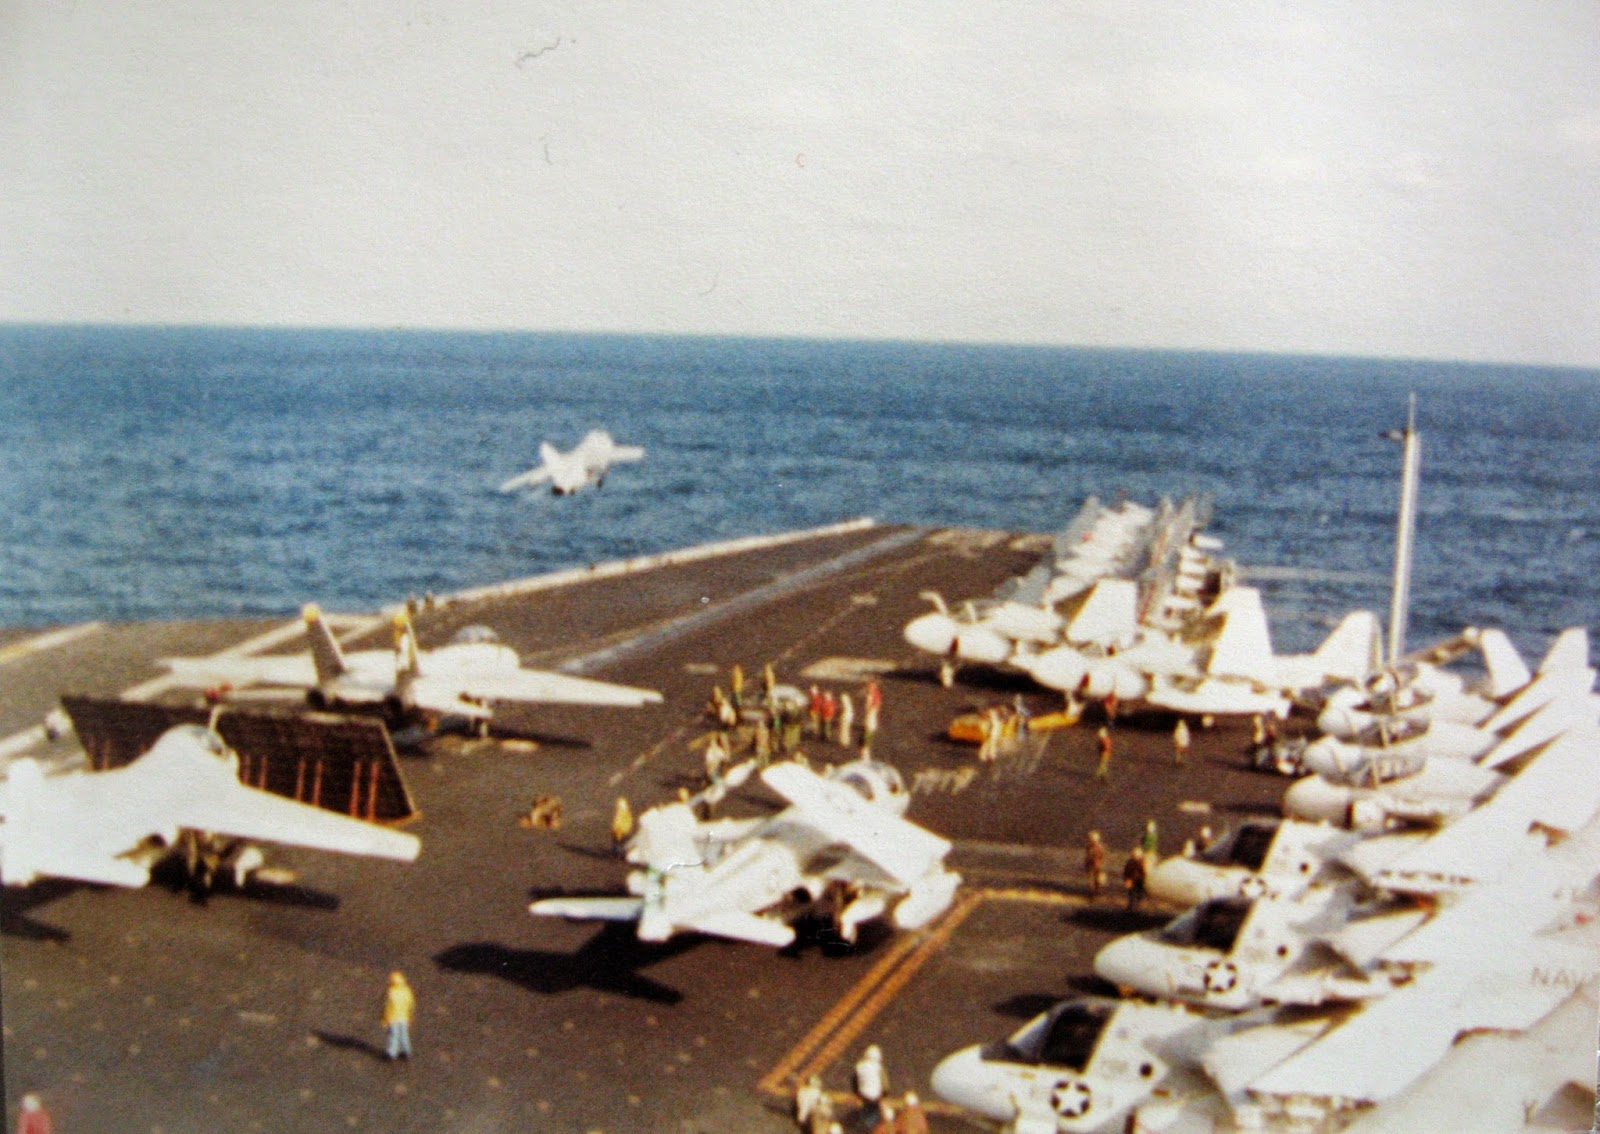 Tommy Mondello watching flight ops USS Nimitz January 1983 Mediterranean Sea